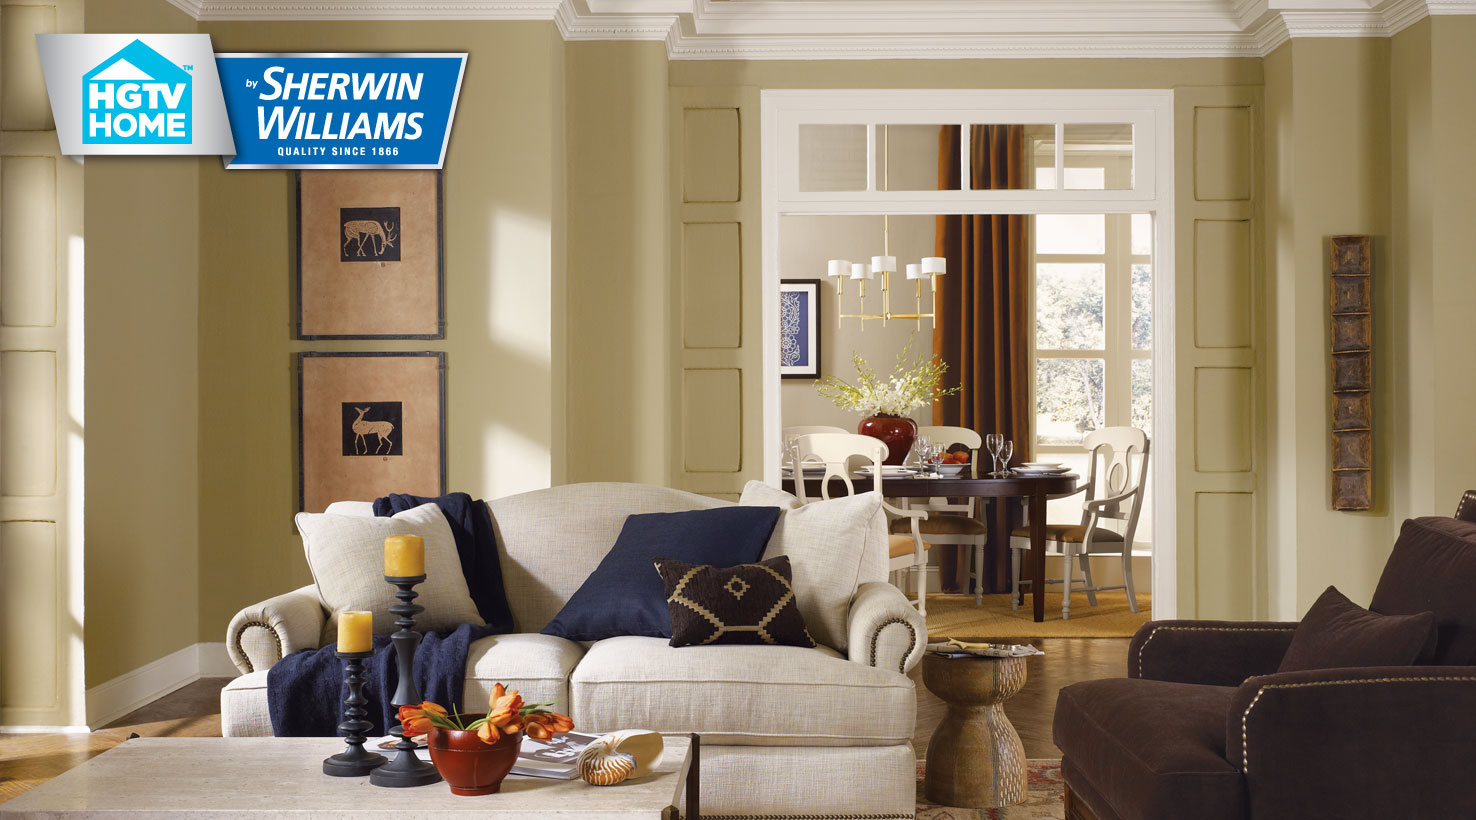 Your Sherwin-Williams